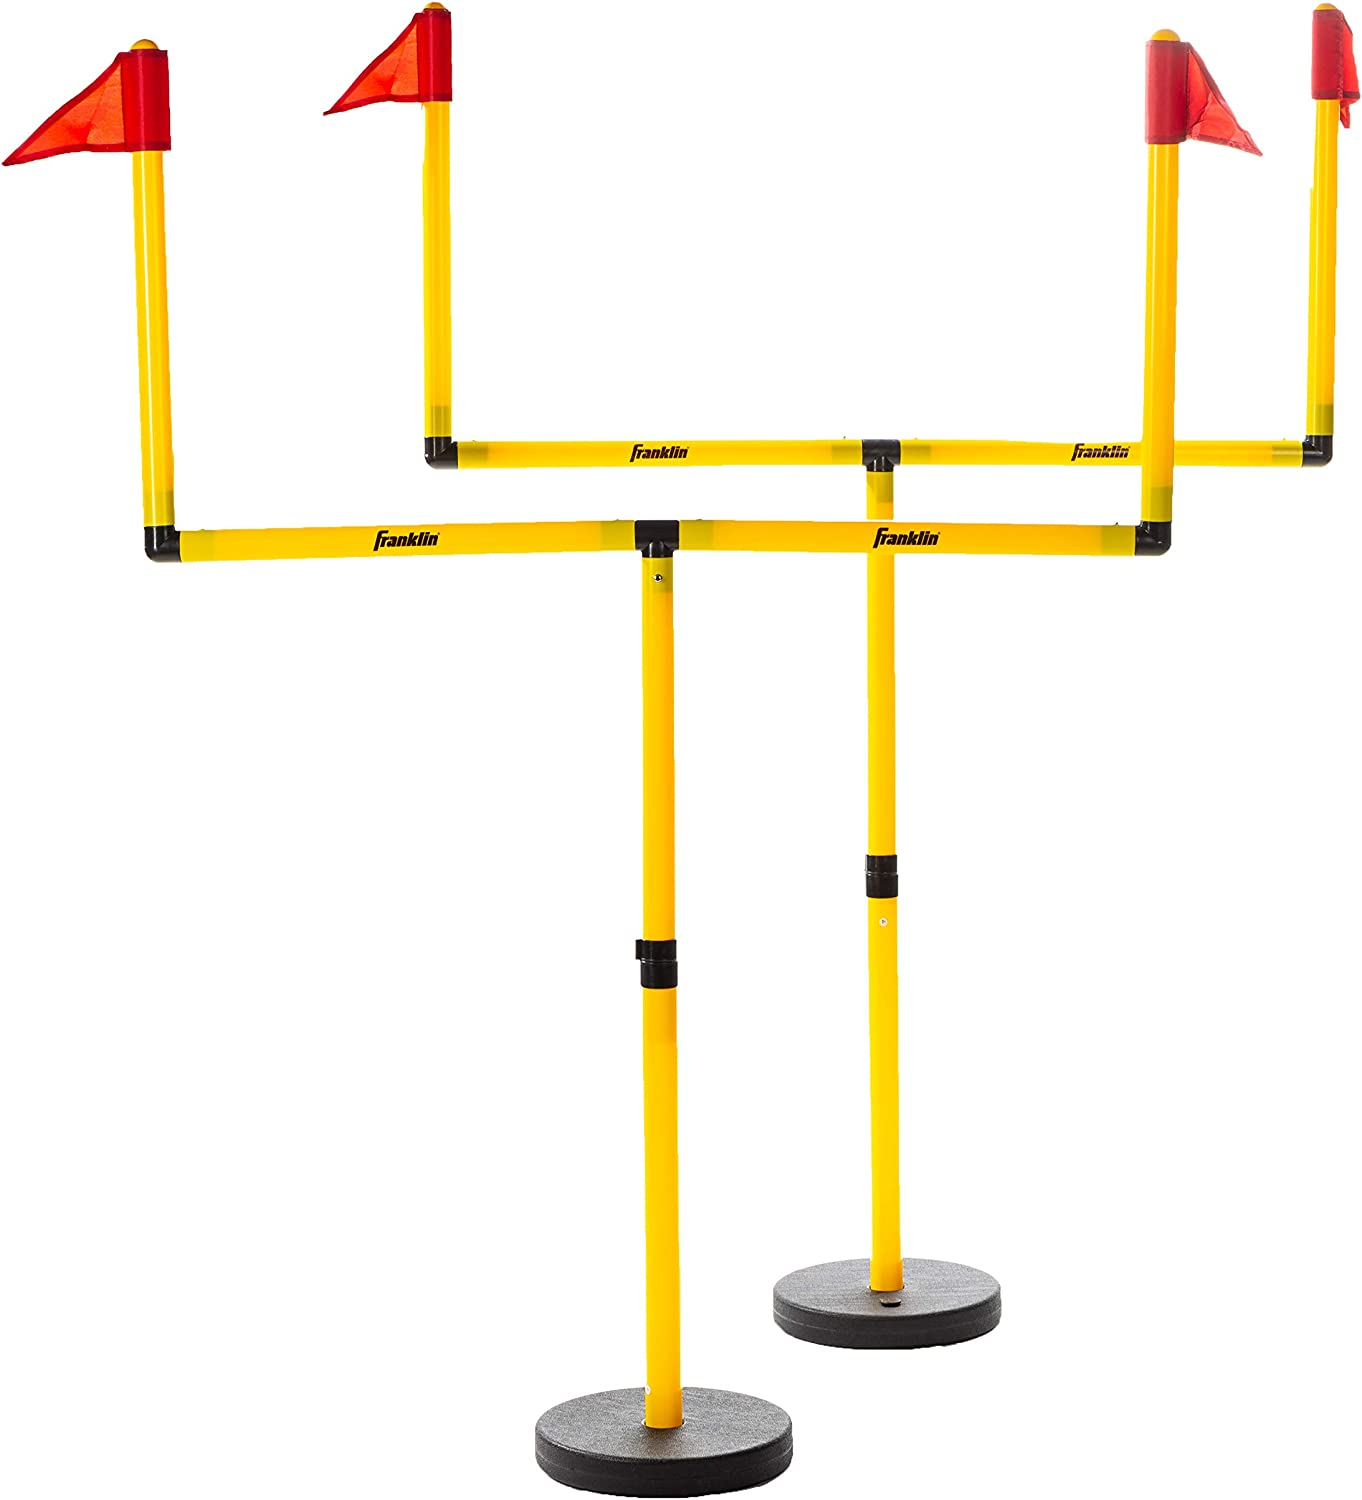 Franklin Sports Youth Football Goal Post Set - Kids Football Easily Adjustable Field Goals - Includes 2 Goal Posts - Perfect for Ages 4+ Backyard Play